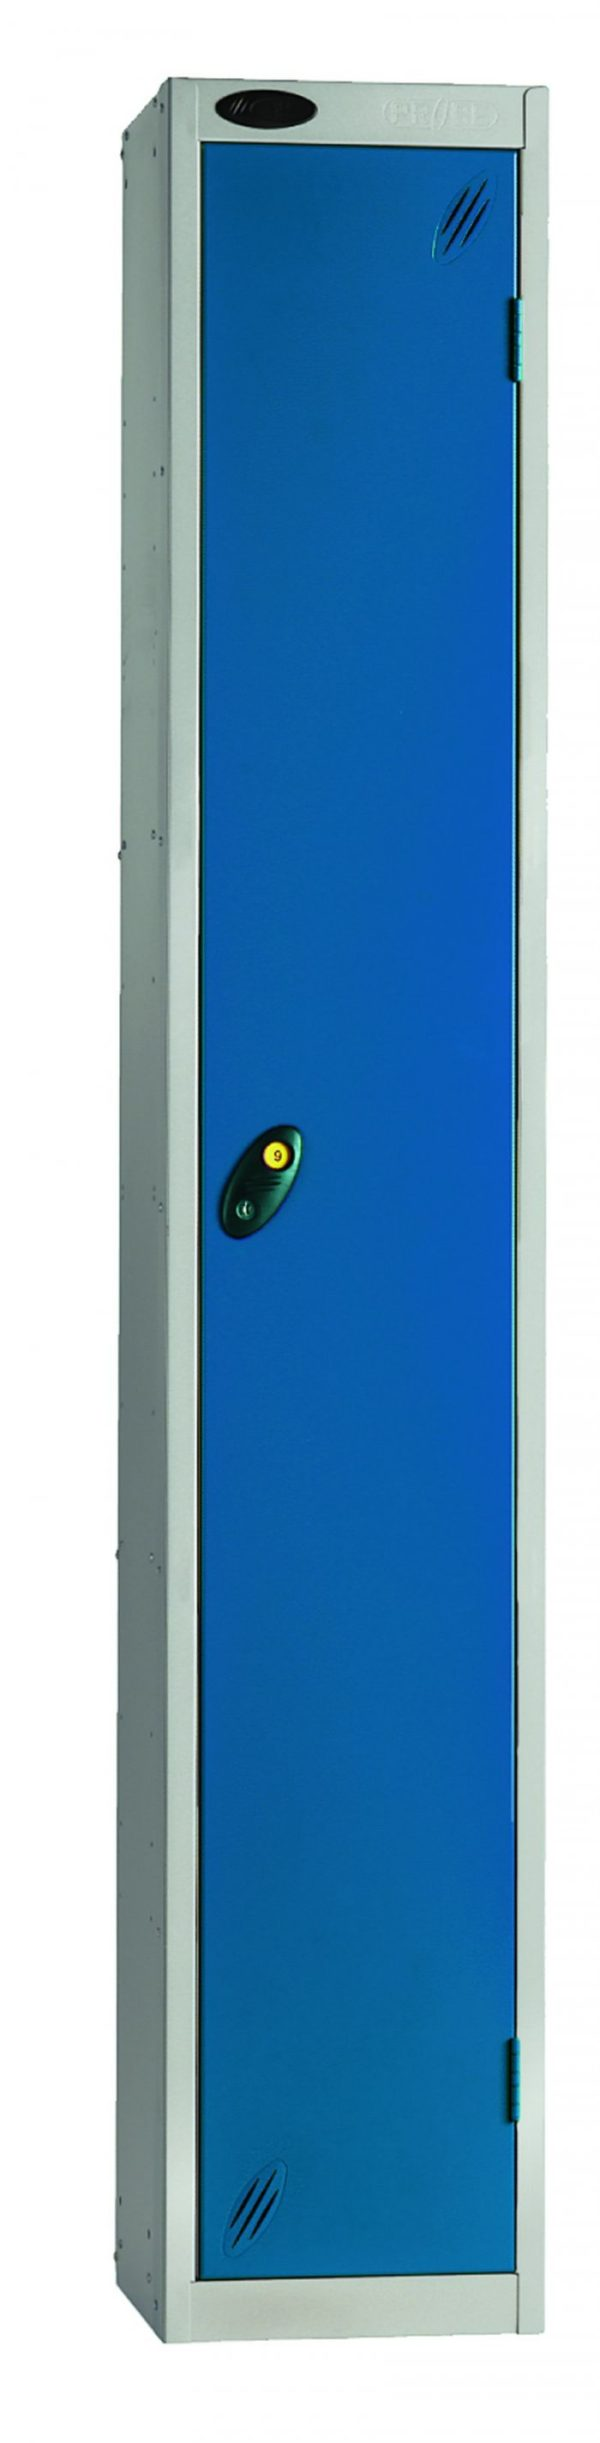 door blue scaled